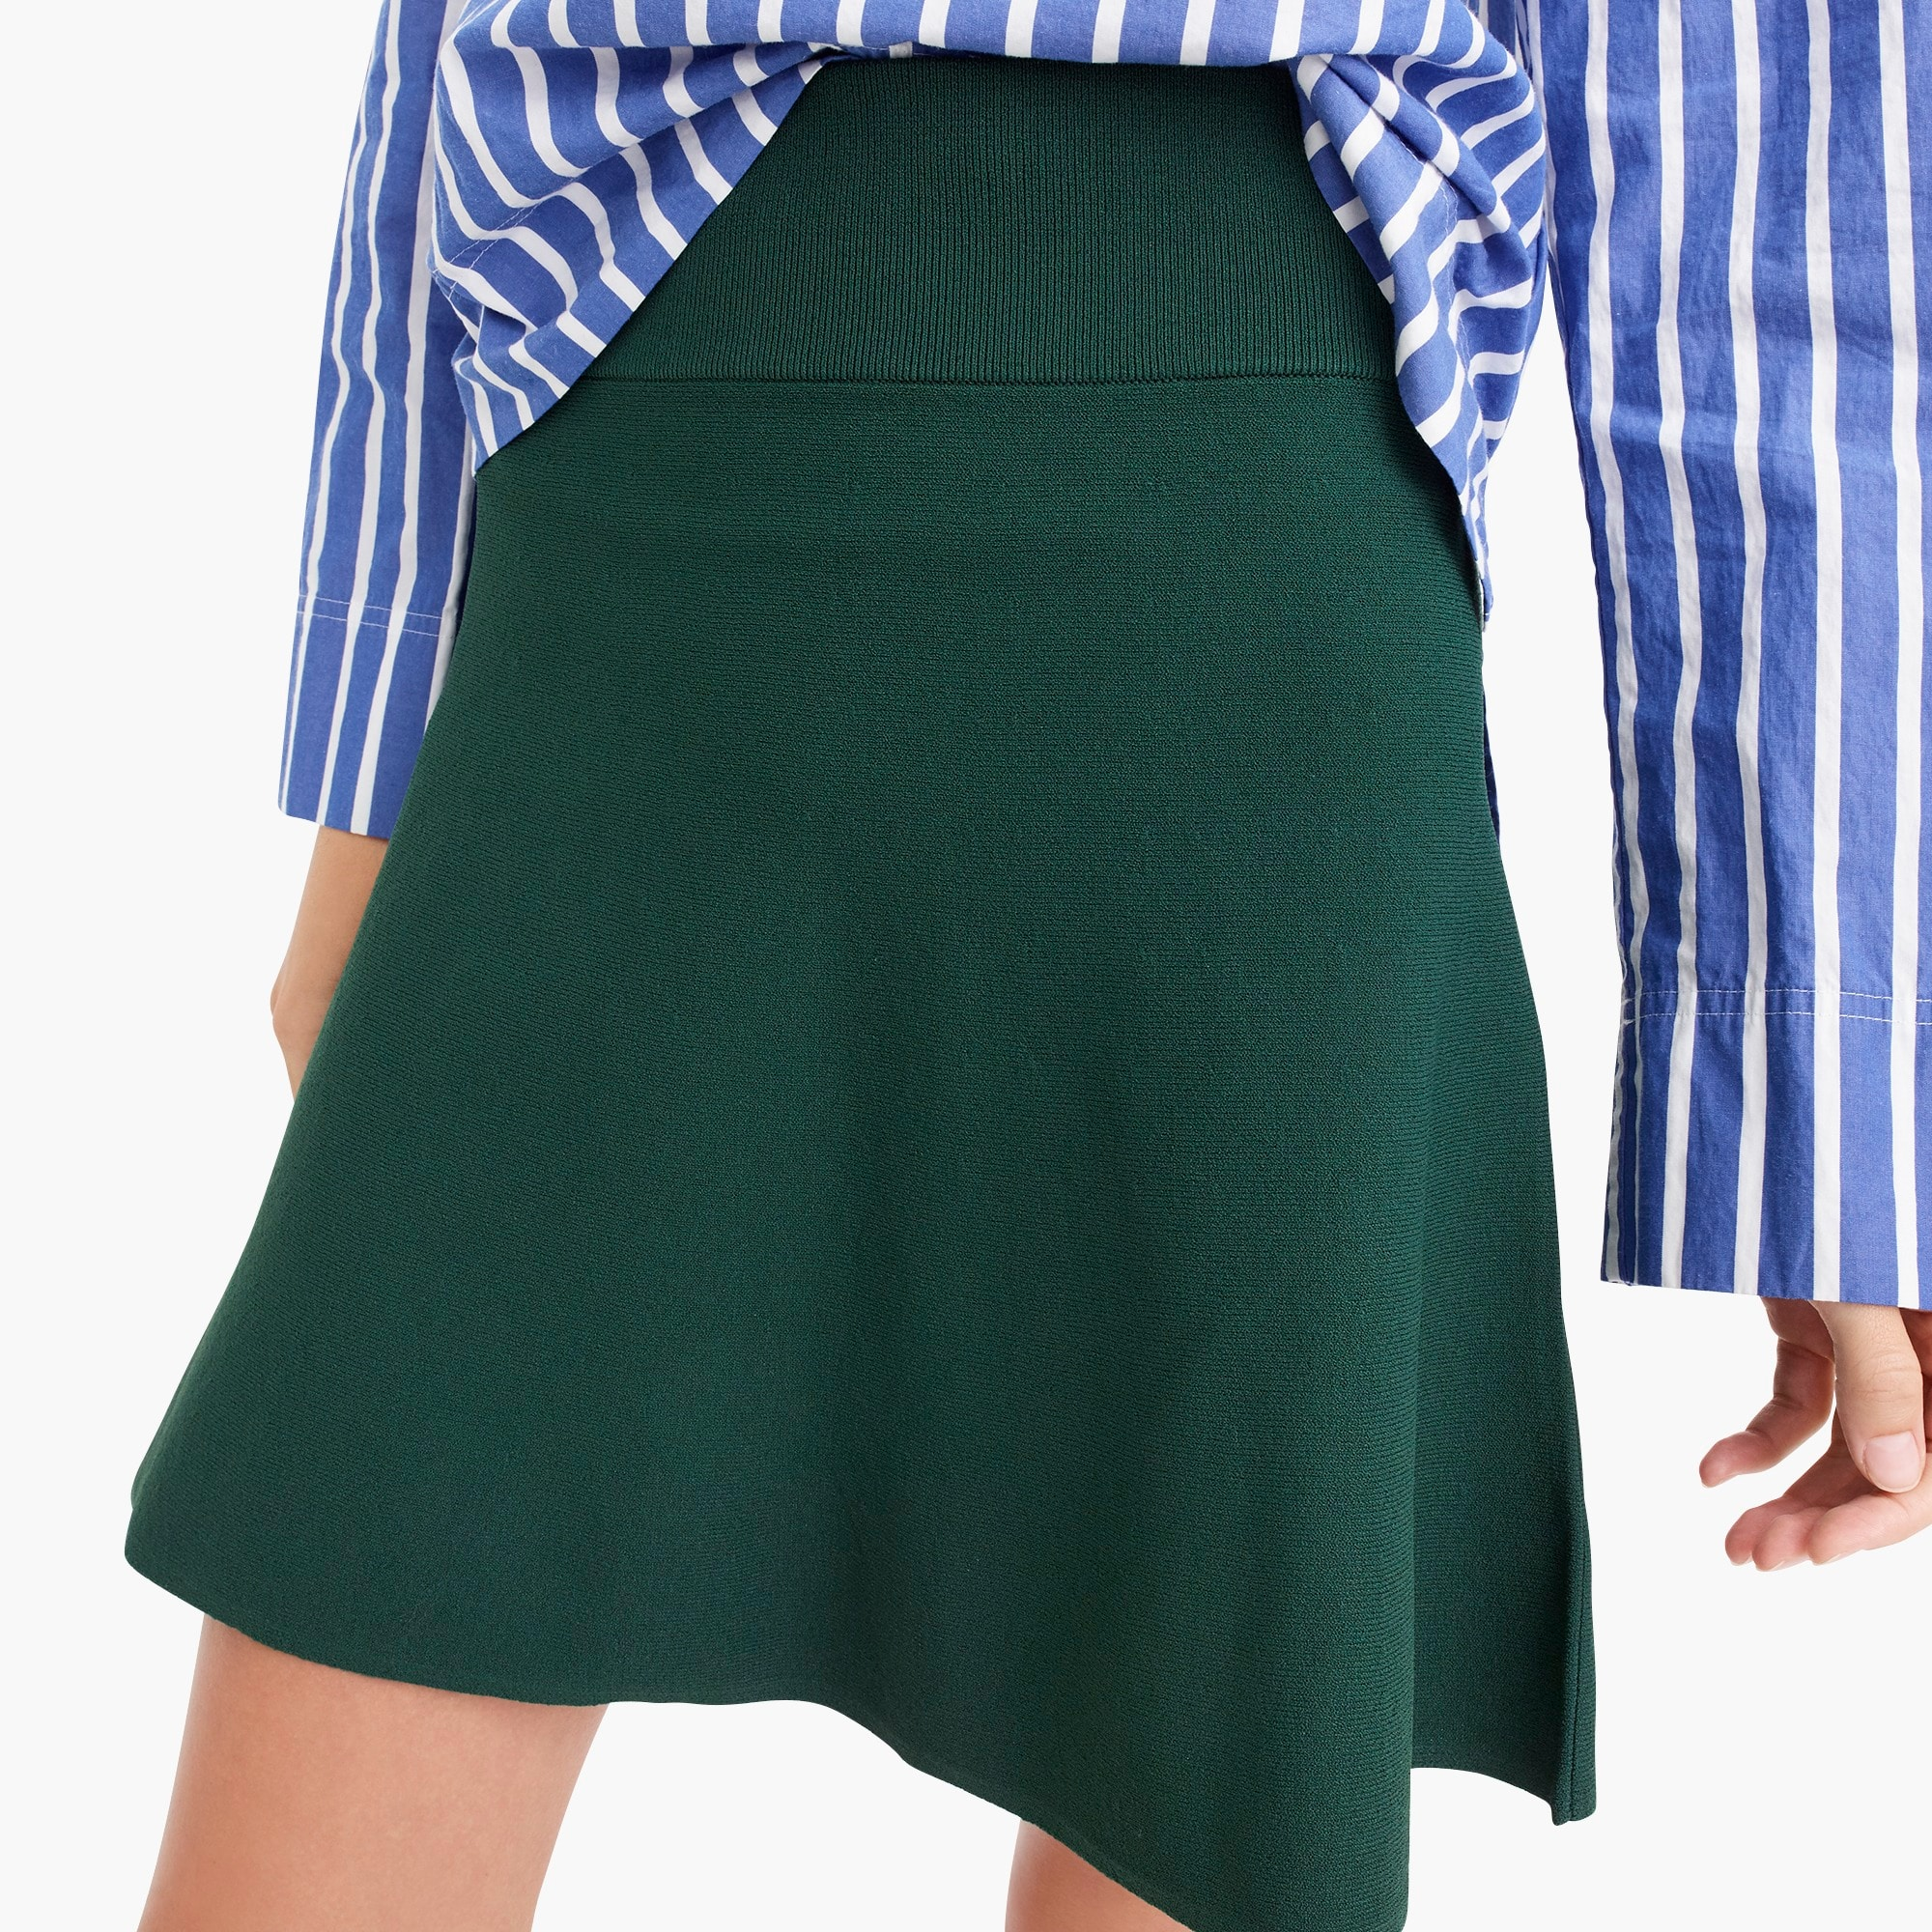 Image 2 for Petite sweater flare mini skirt